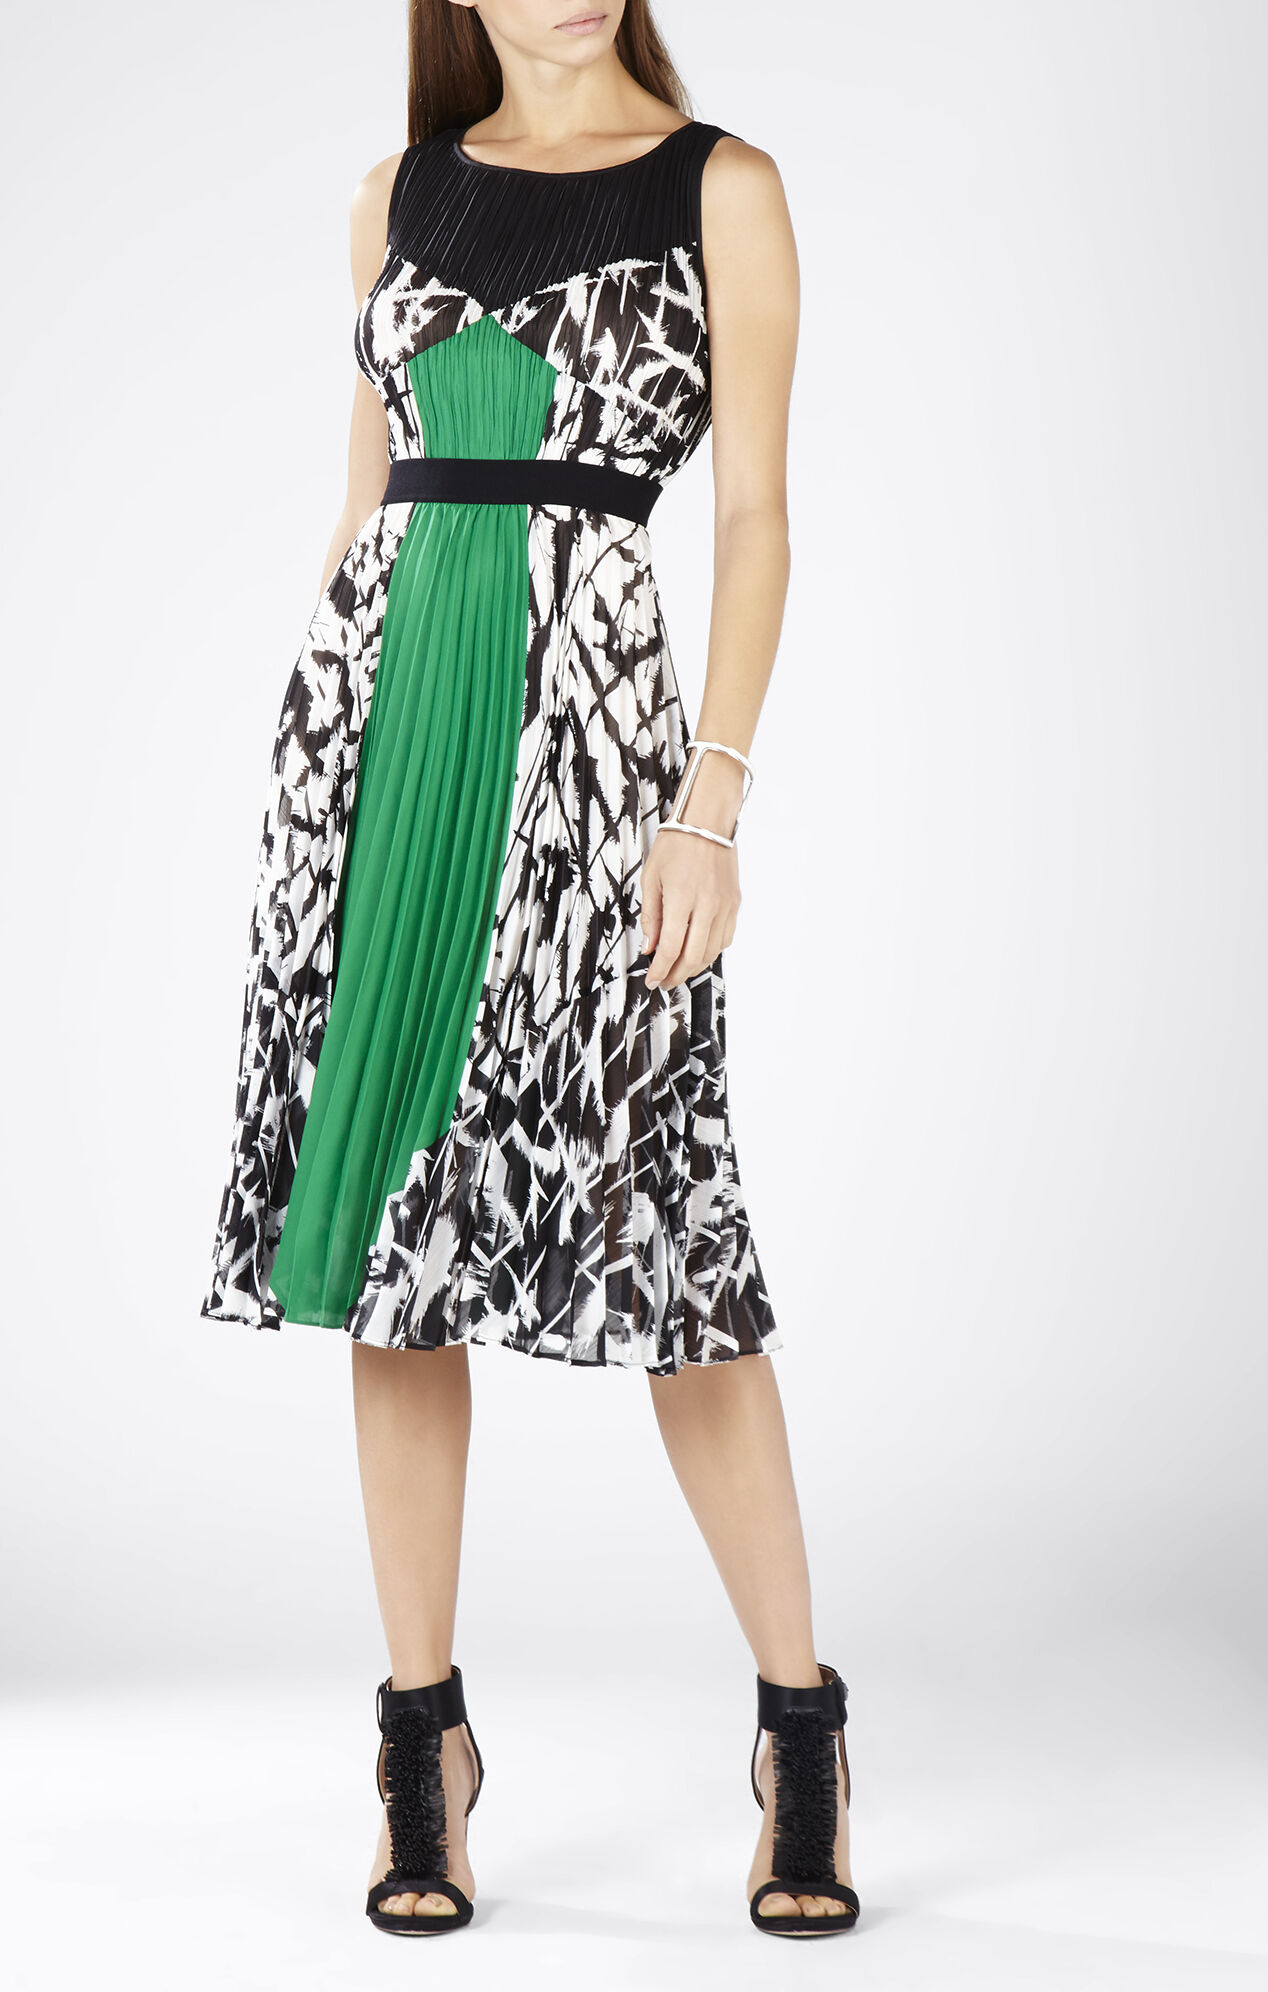 Camyla Print-Blocked Pleated Dress